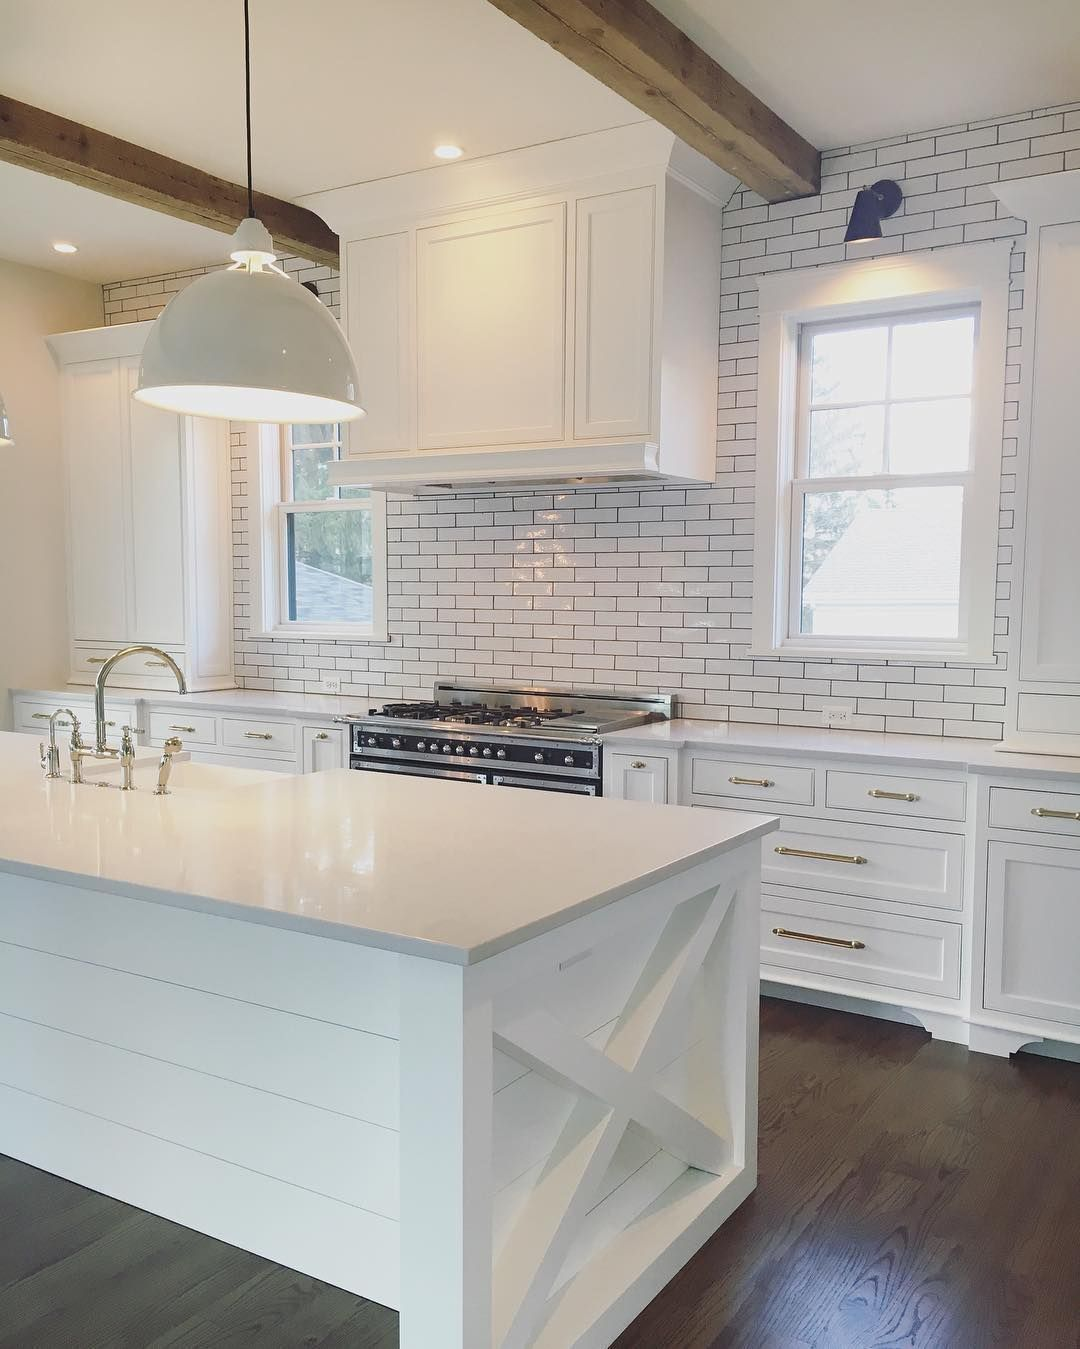 Painted Kitchen Cabinet Ideas Simple White Subway Tile Range Hood